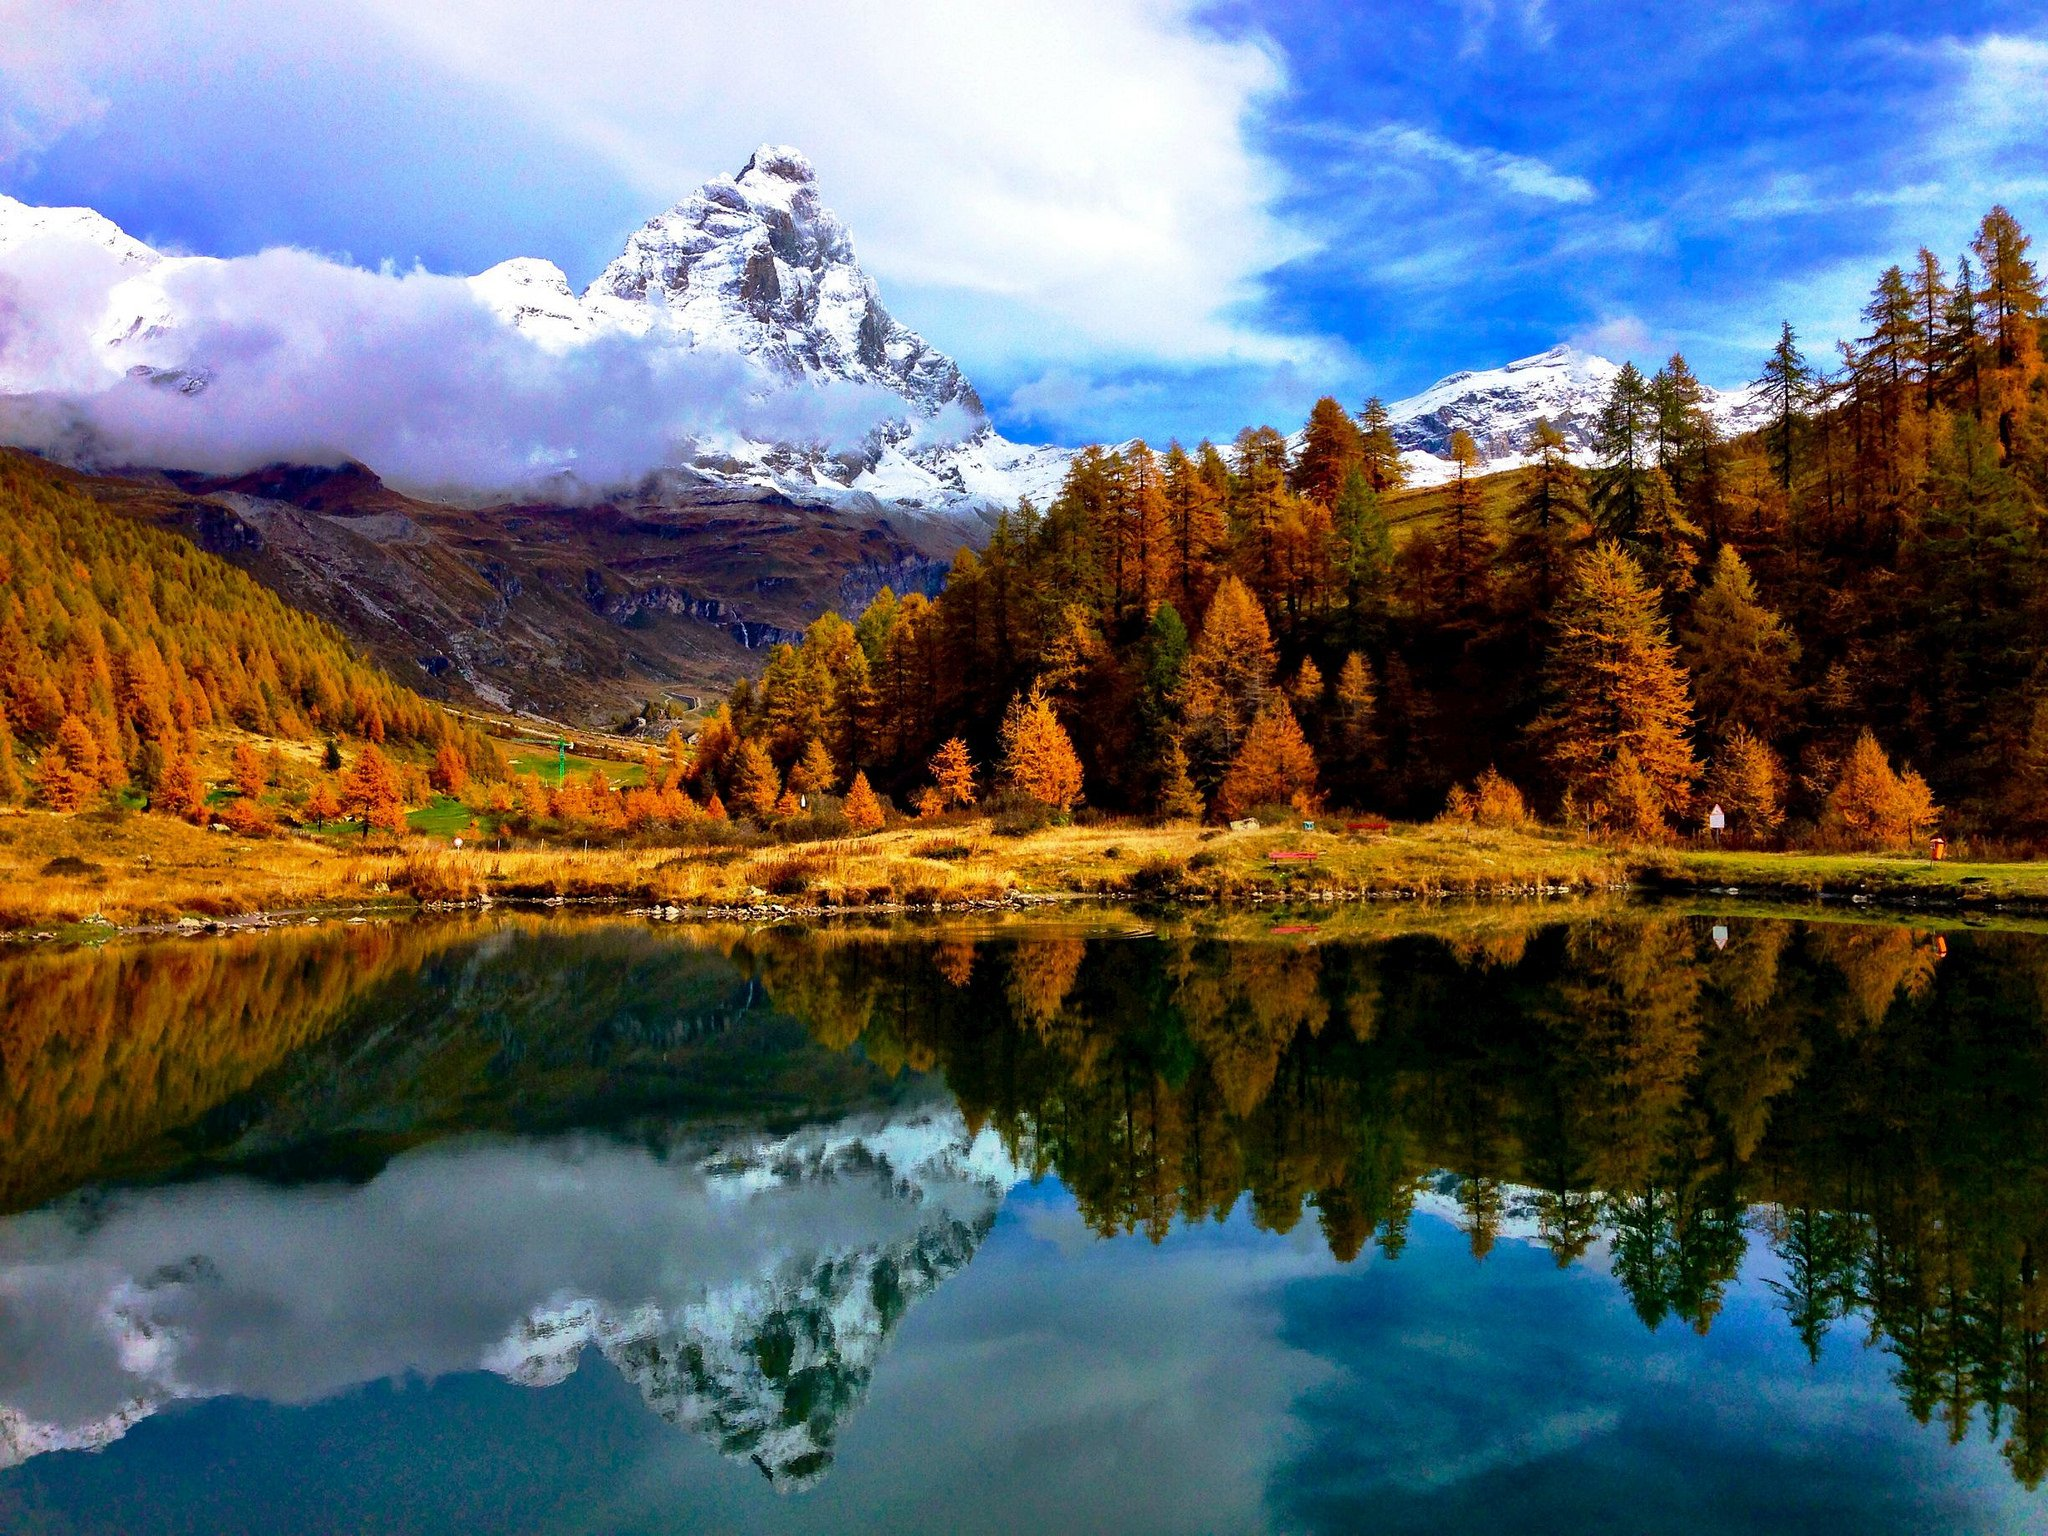 Serene Wallpapers Large Fall Lake Landscape Mountain Sky Commune Cervino Valley Aosta A